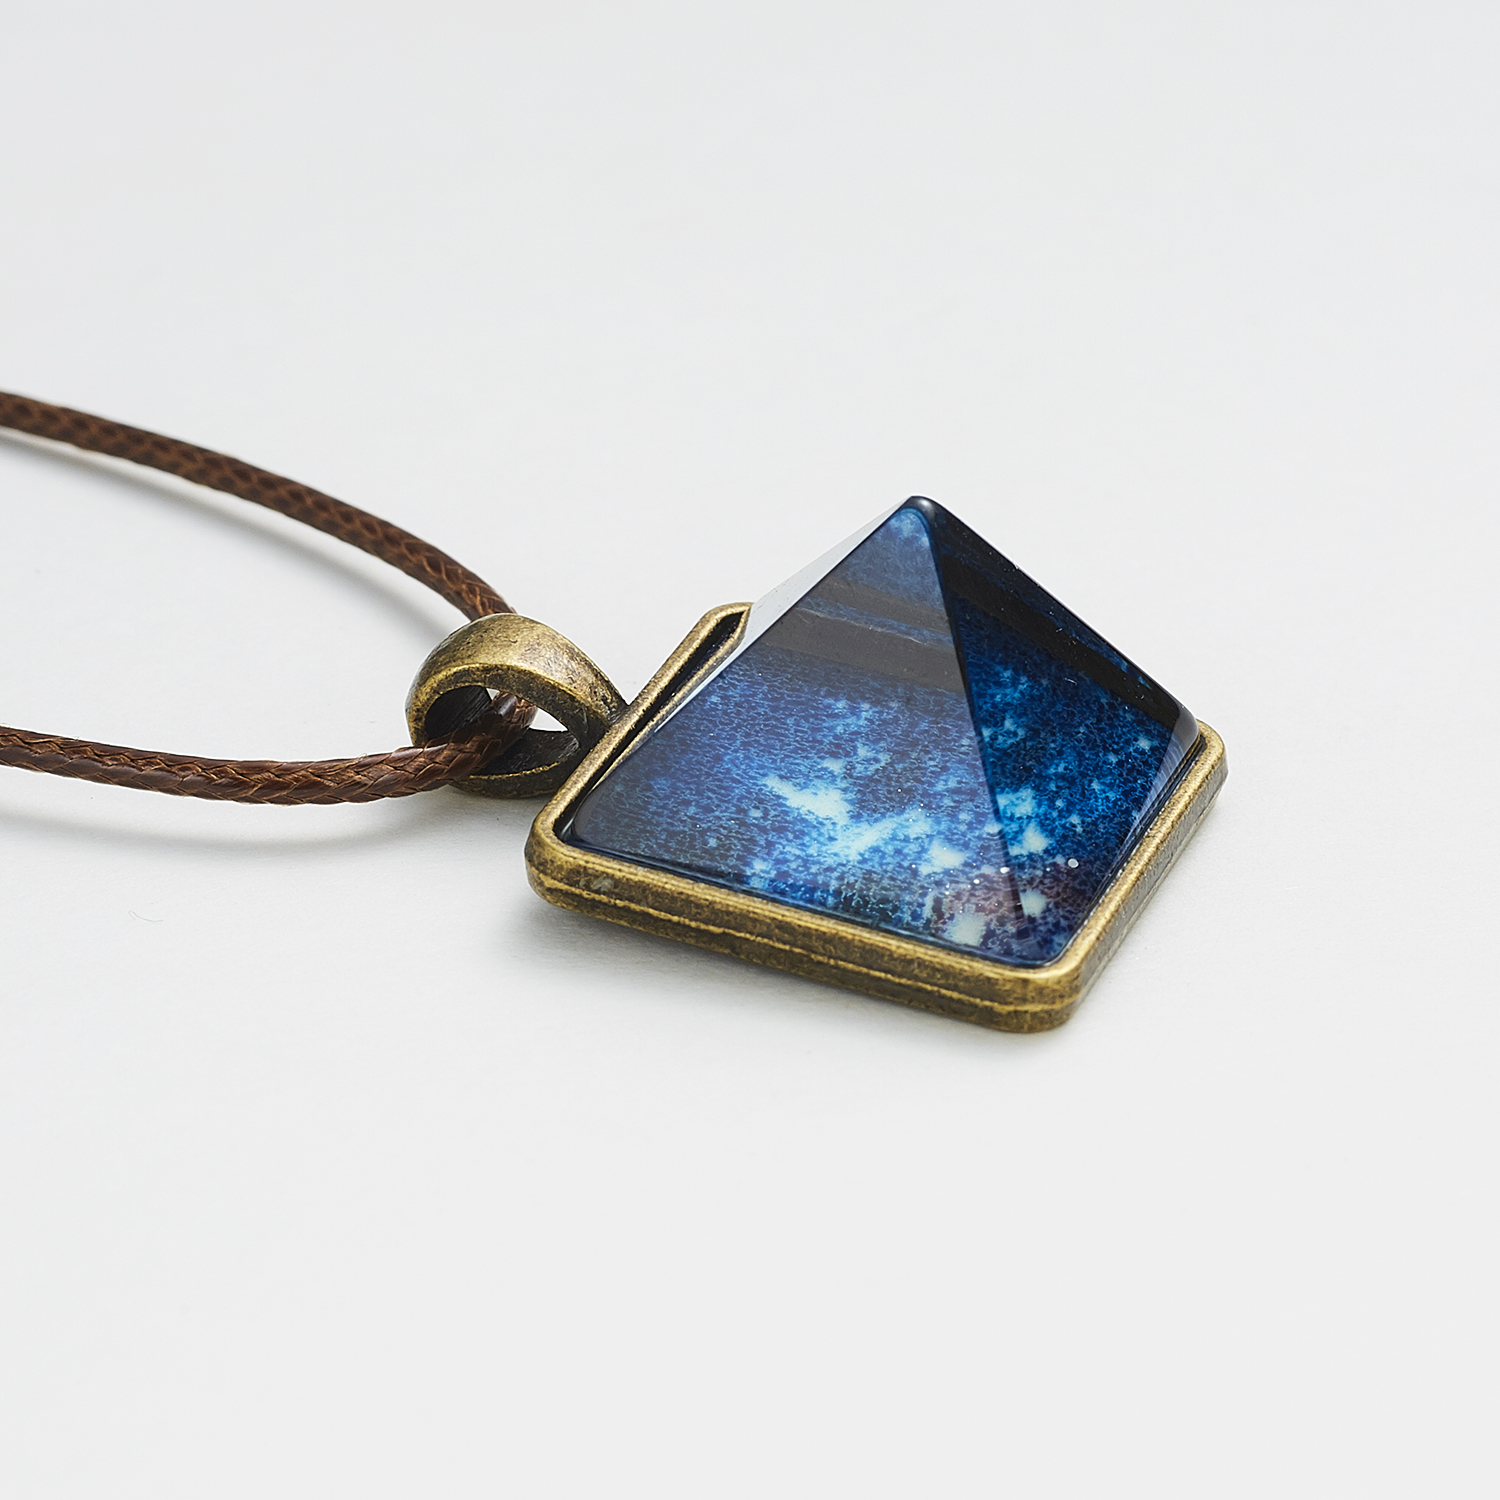 Vintage Crystal Glow In The Dark Necklace Pyramid Pendant Space Star Triangle Geometric Luminous Necklace for Women Men Gift image